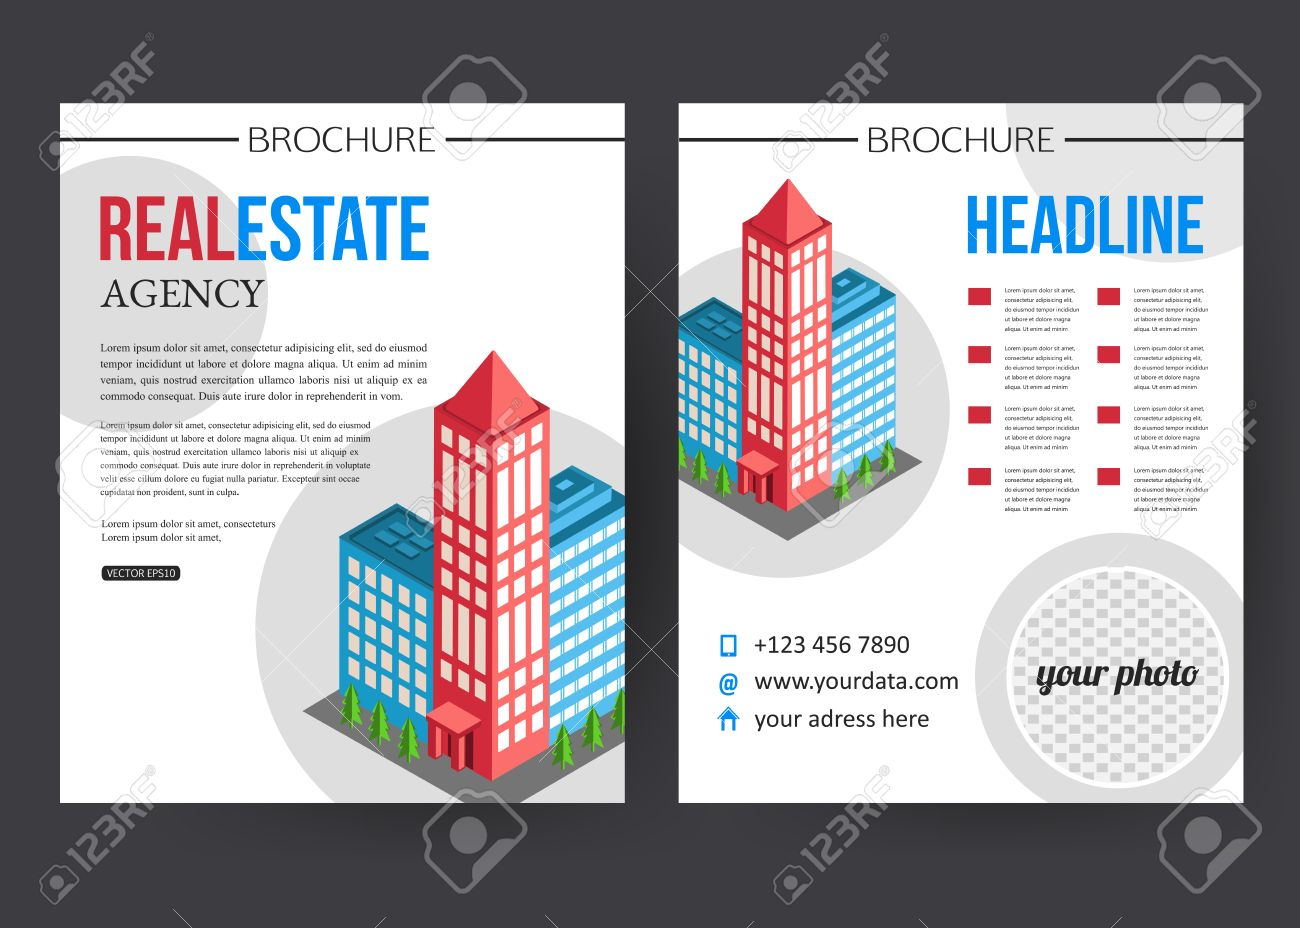 flat isometric city real estate brochure template place flat isometric city real estate brochure template place for text and place for photo